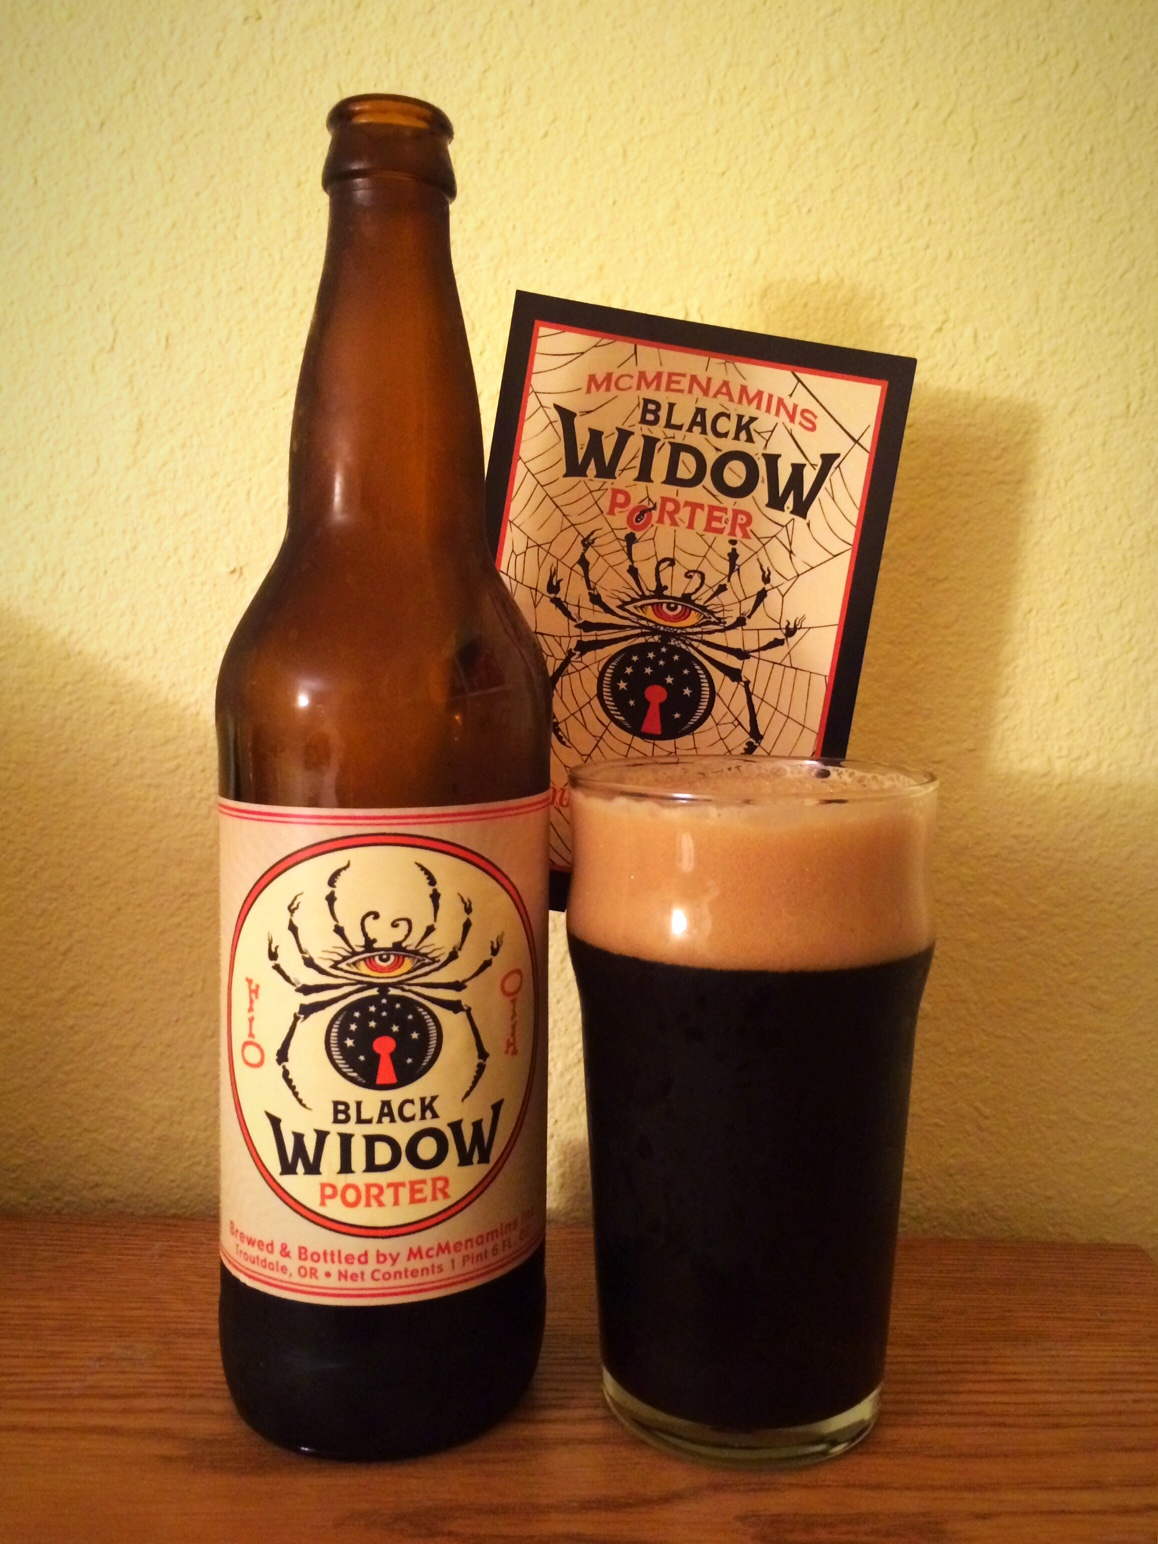 McMenamins Black Widow Porter (photo by D.J. Paul)